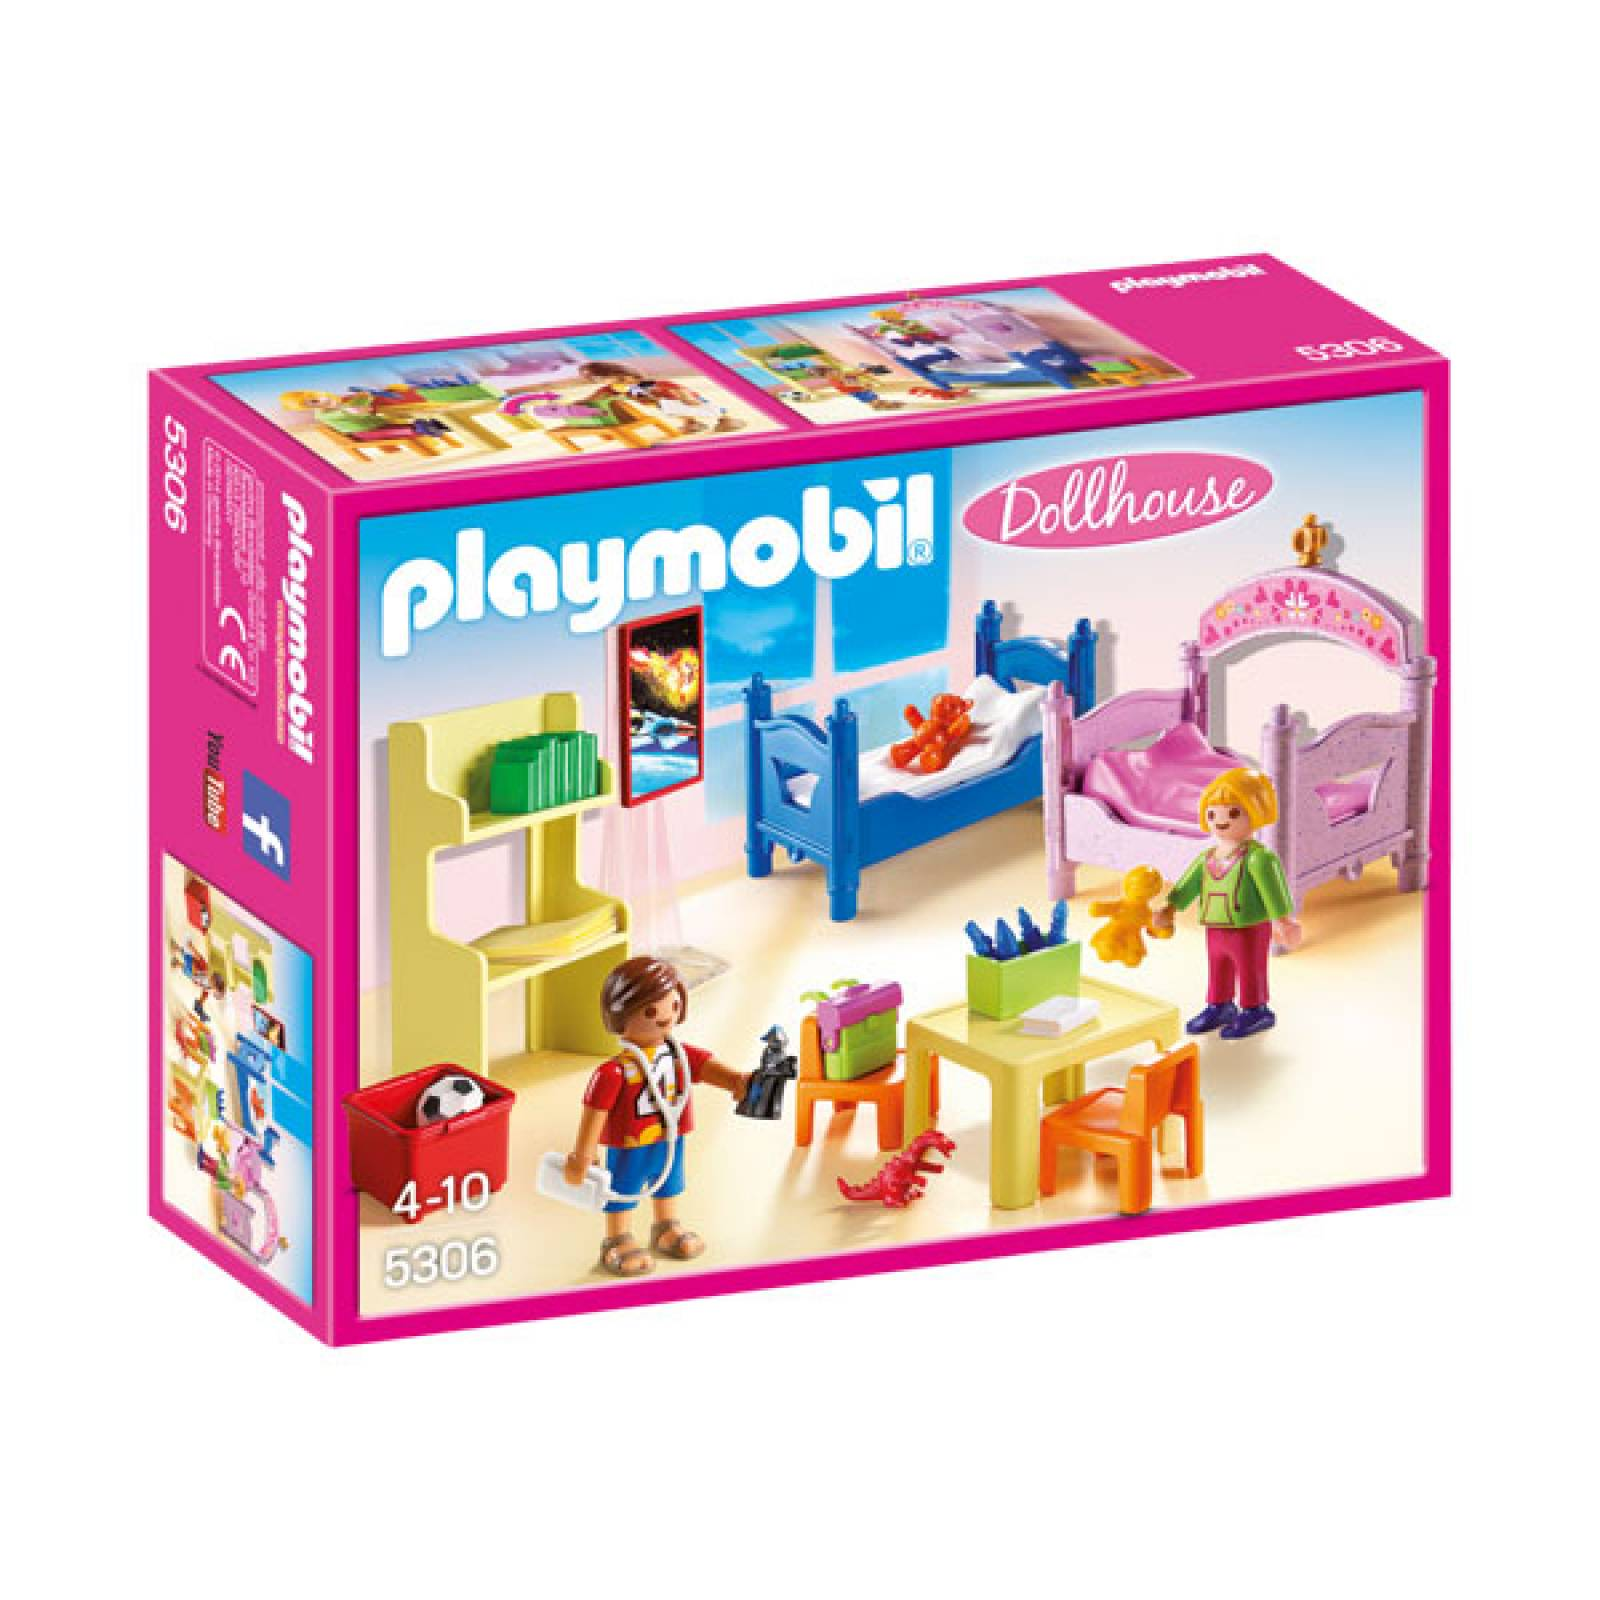 Children's Room Playmobil 5306 thumbnails